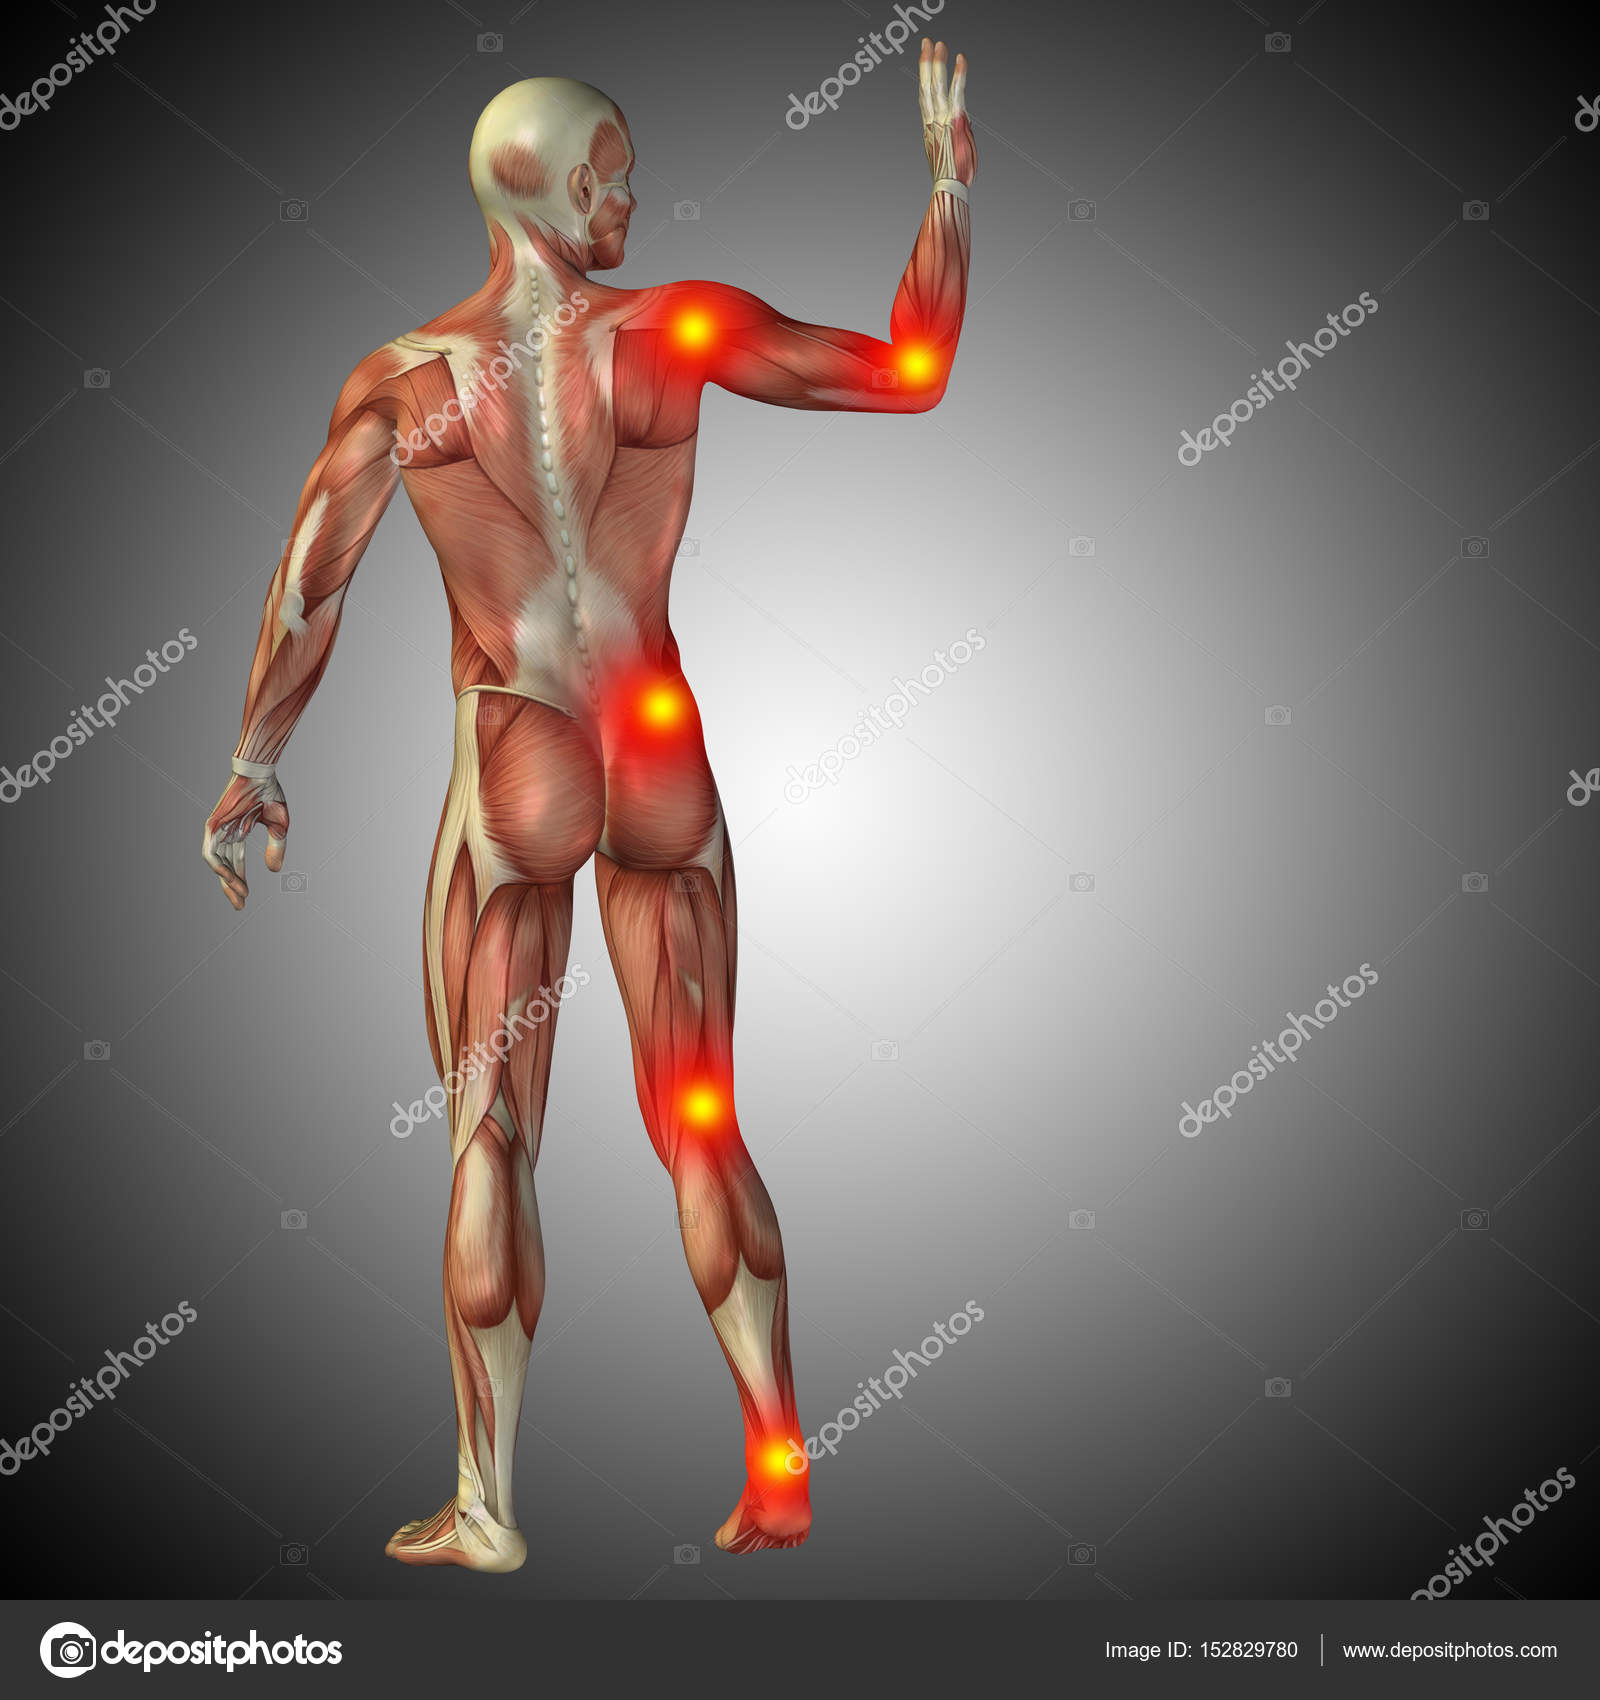 human body anatomy with pain signs — Stock Photo © design36 #152829780